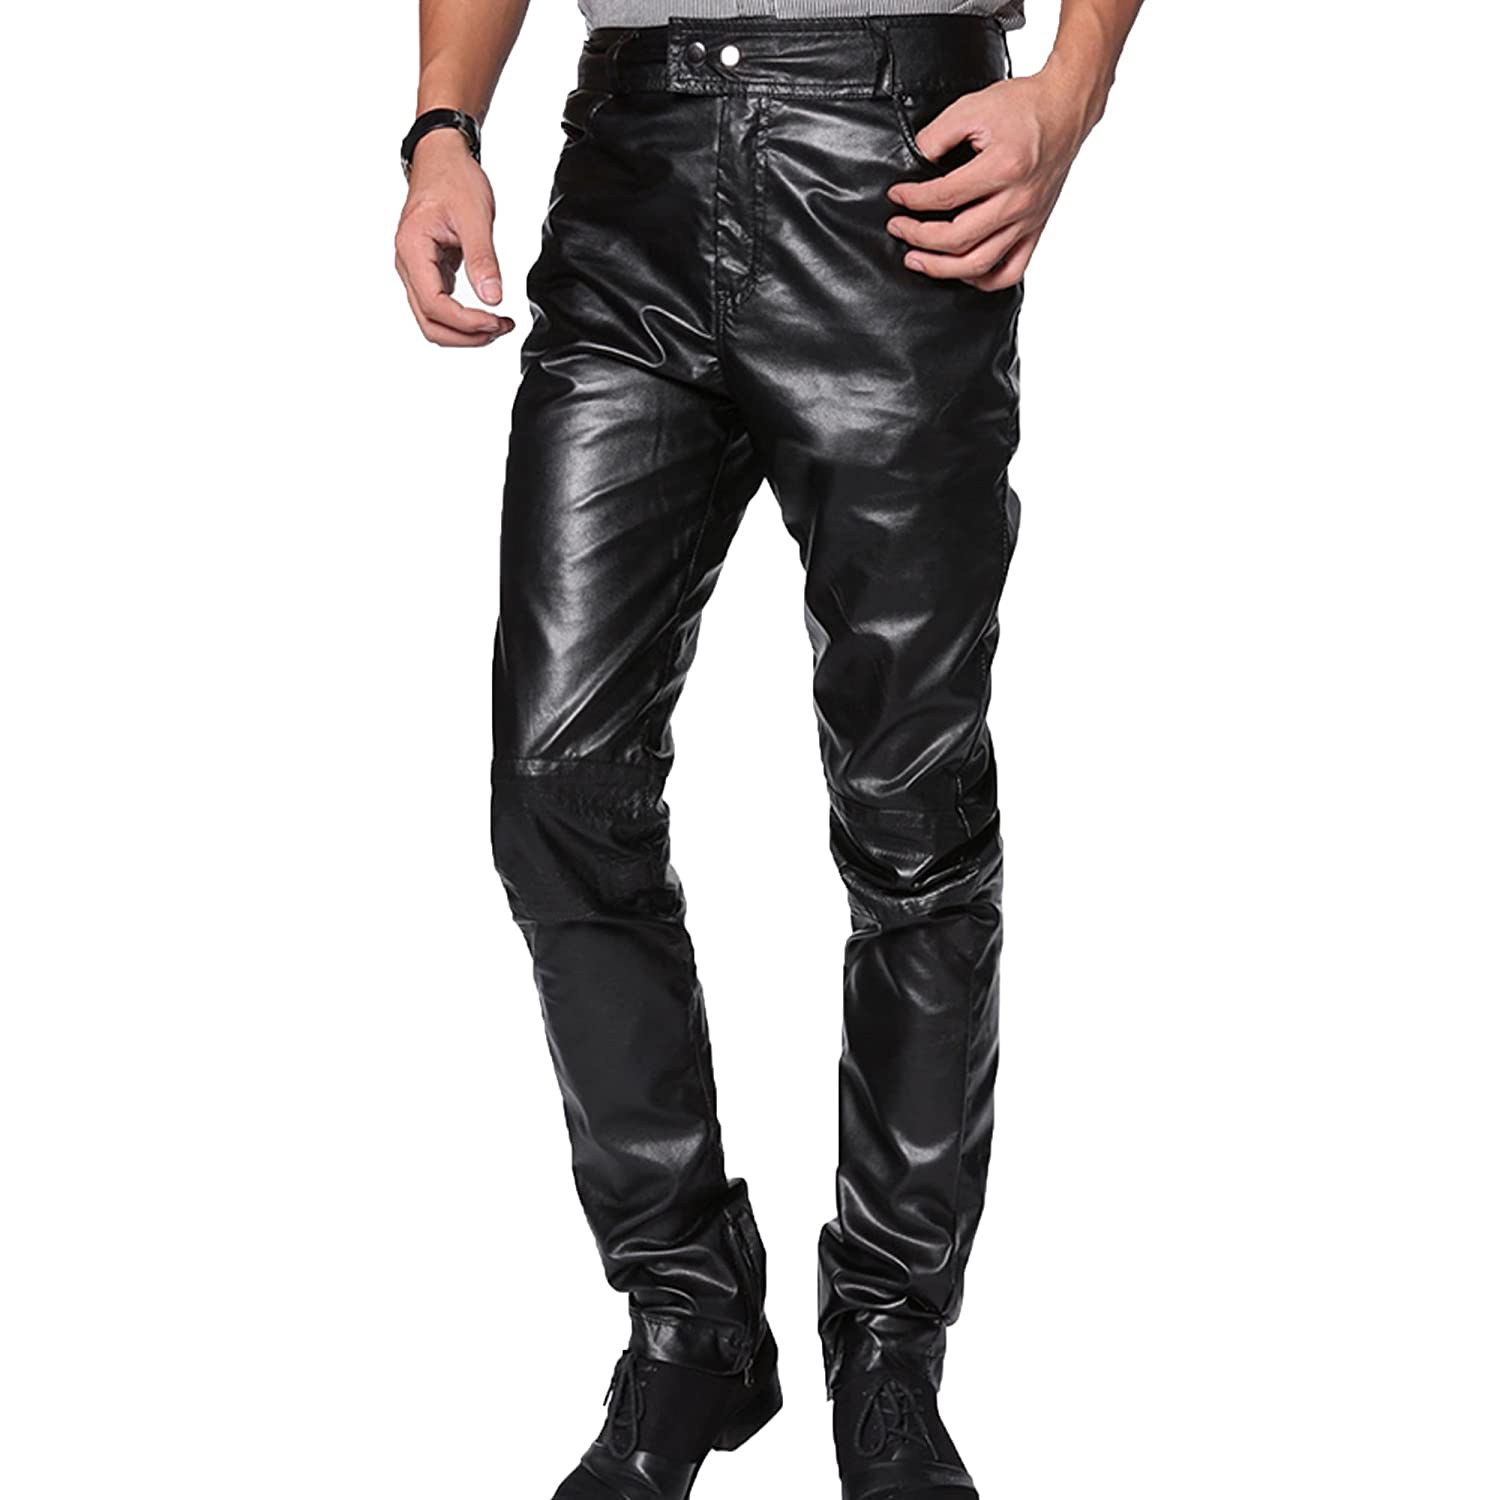 Zeagoo Men's Faux Leather Trousers Pants